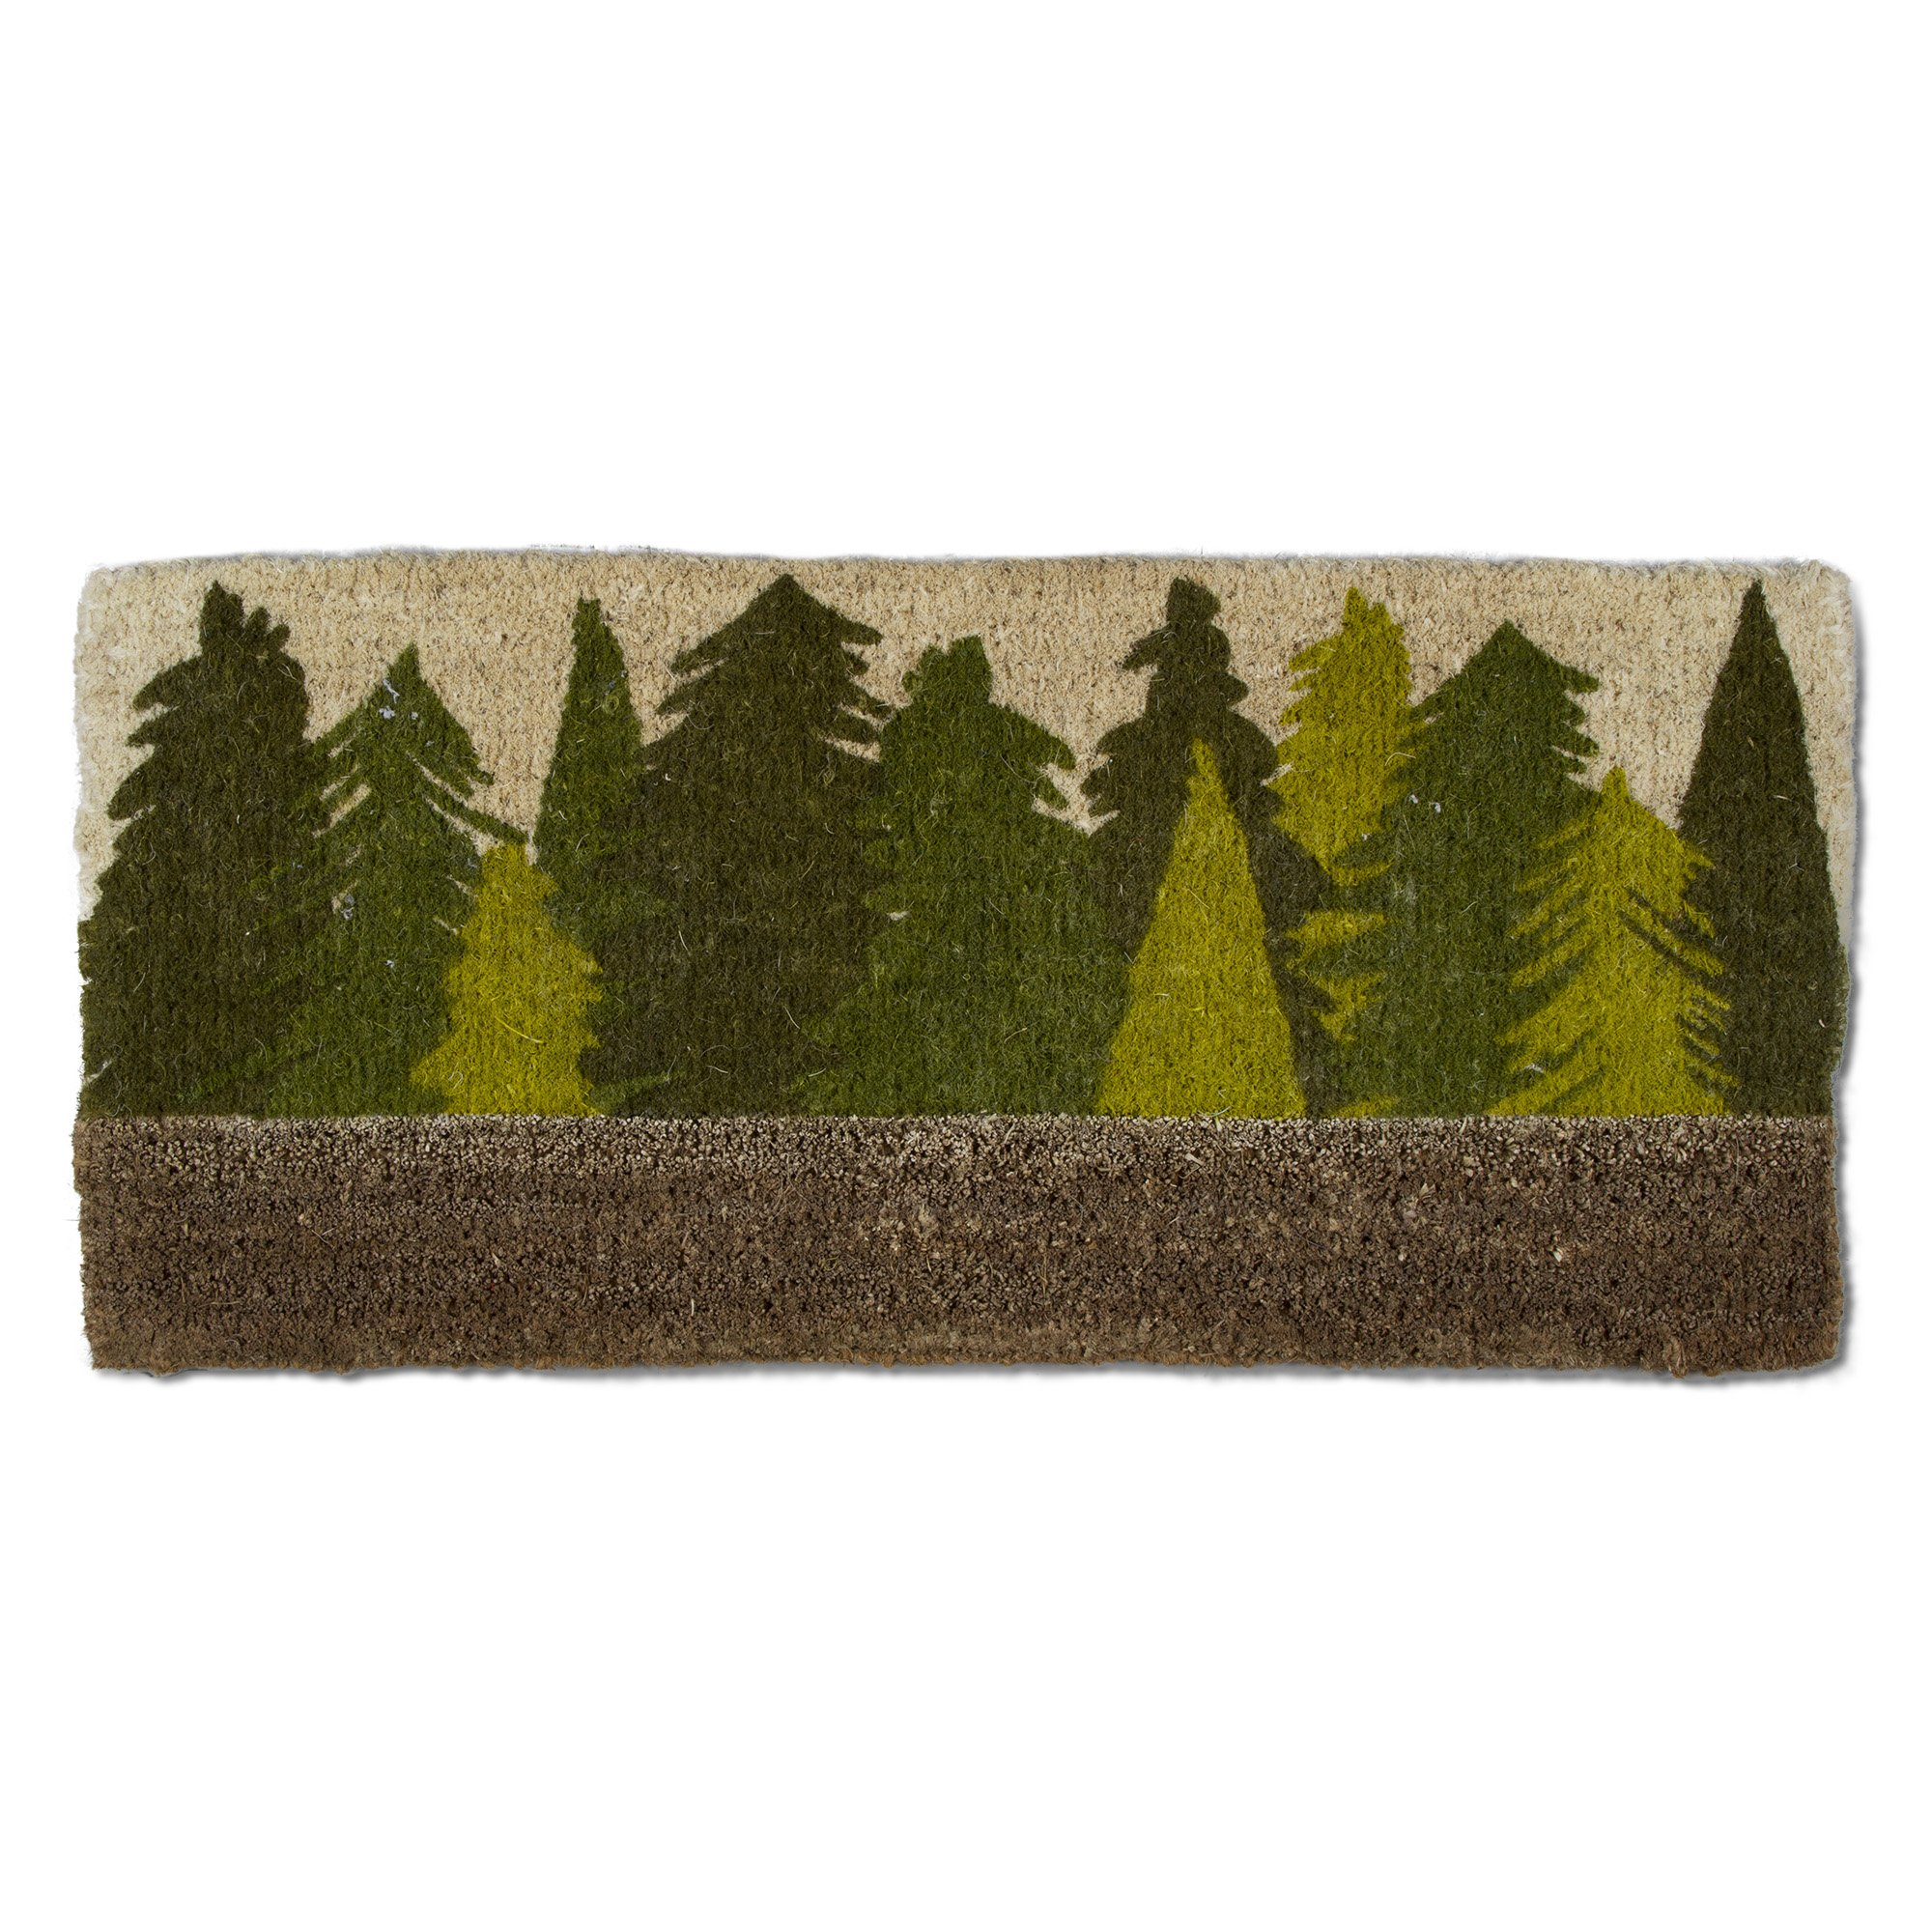 tag - Woodland Tree Estate Boot Scrape Coir Mat, Decorative All-Season Mat for the Front Porch, Patio or Entryway, Green